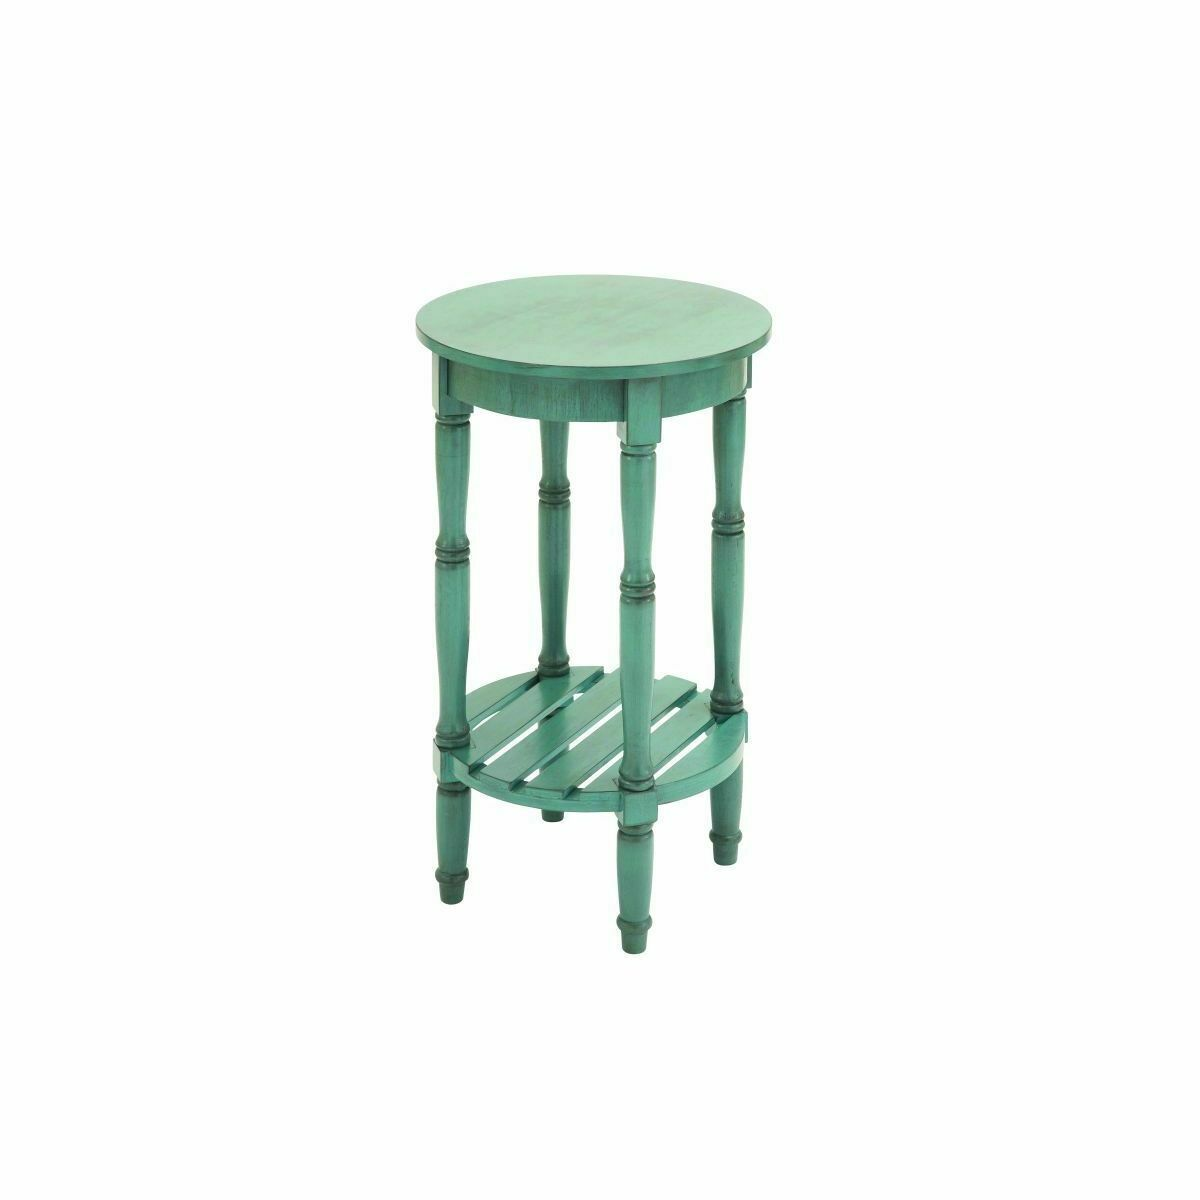 Wood Round Accent Table (16 inches wide x 29 inches high